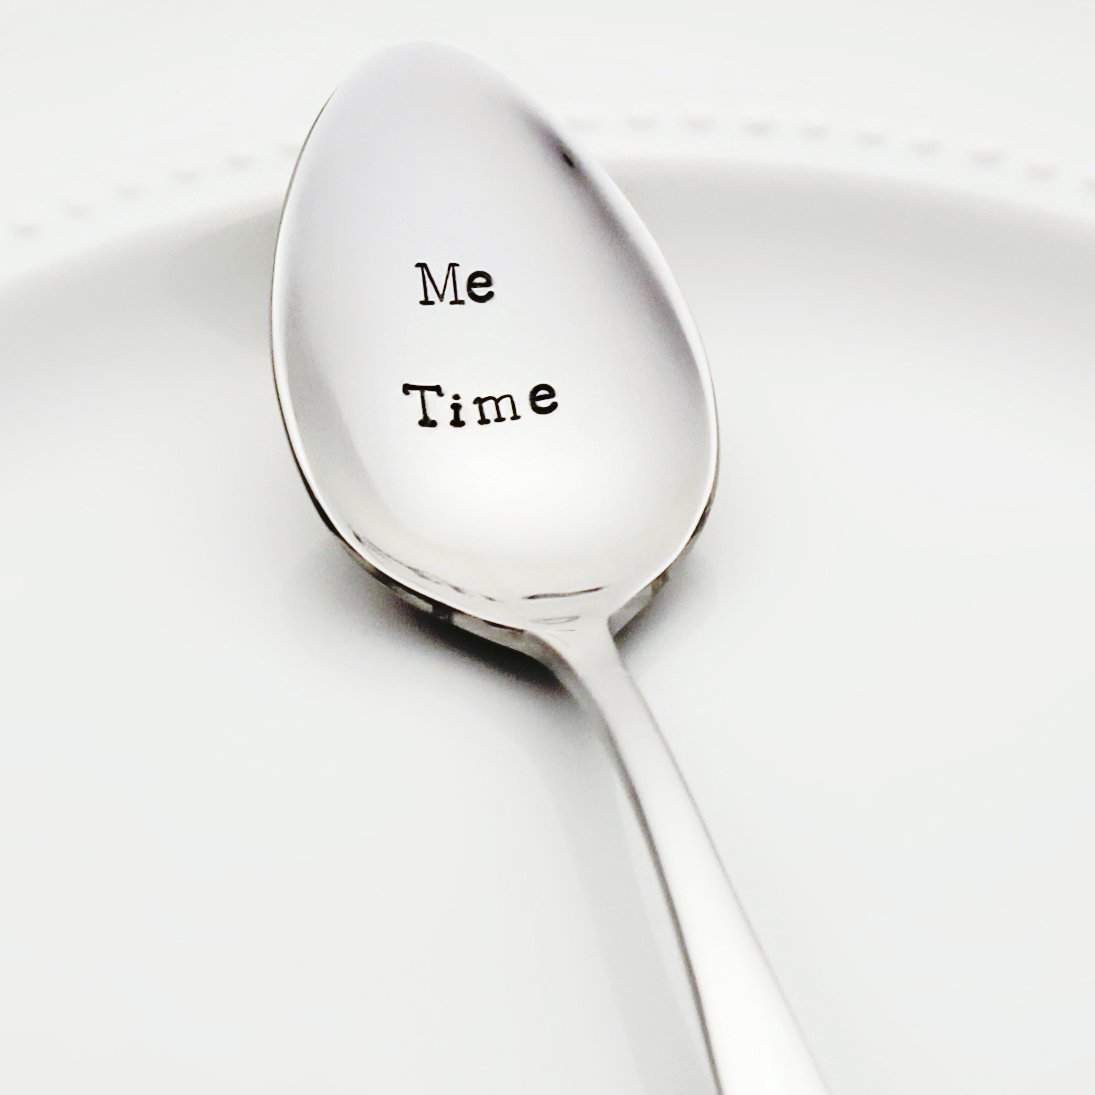 Me Time - Stainless Steel Stamped Spoon, Stamped Silverware - Unique Birthday Gift for Mom - Treat Yo Self - Self Care Mother's Day Gift for Her